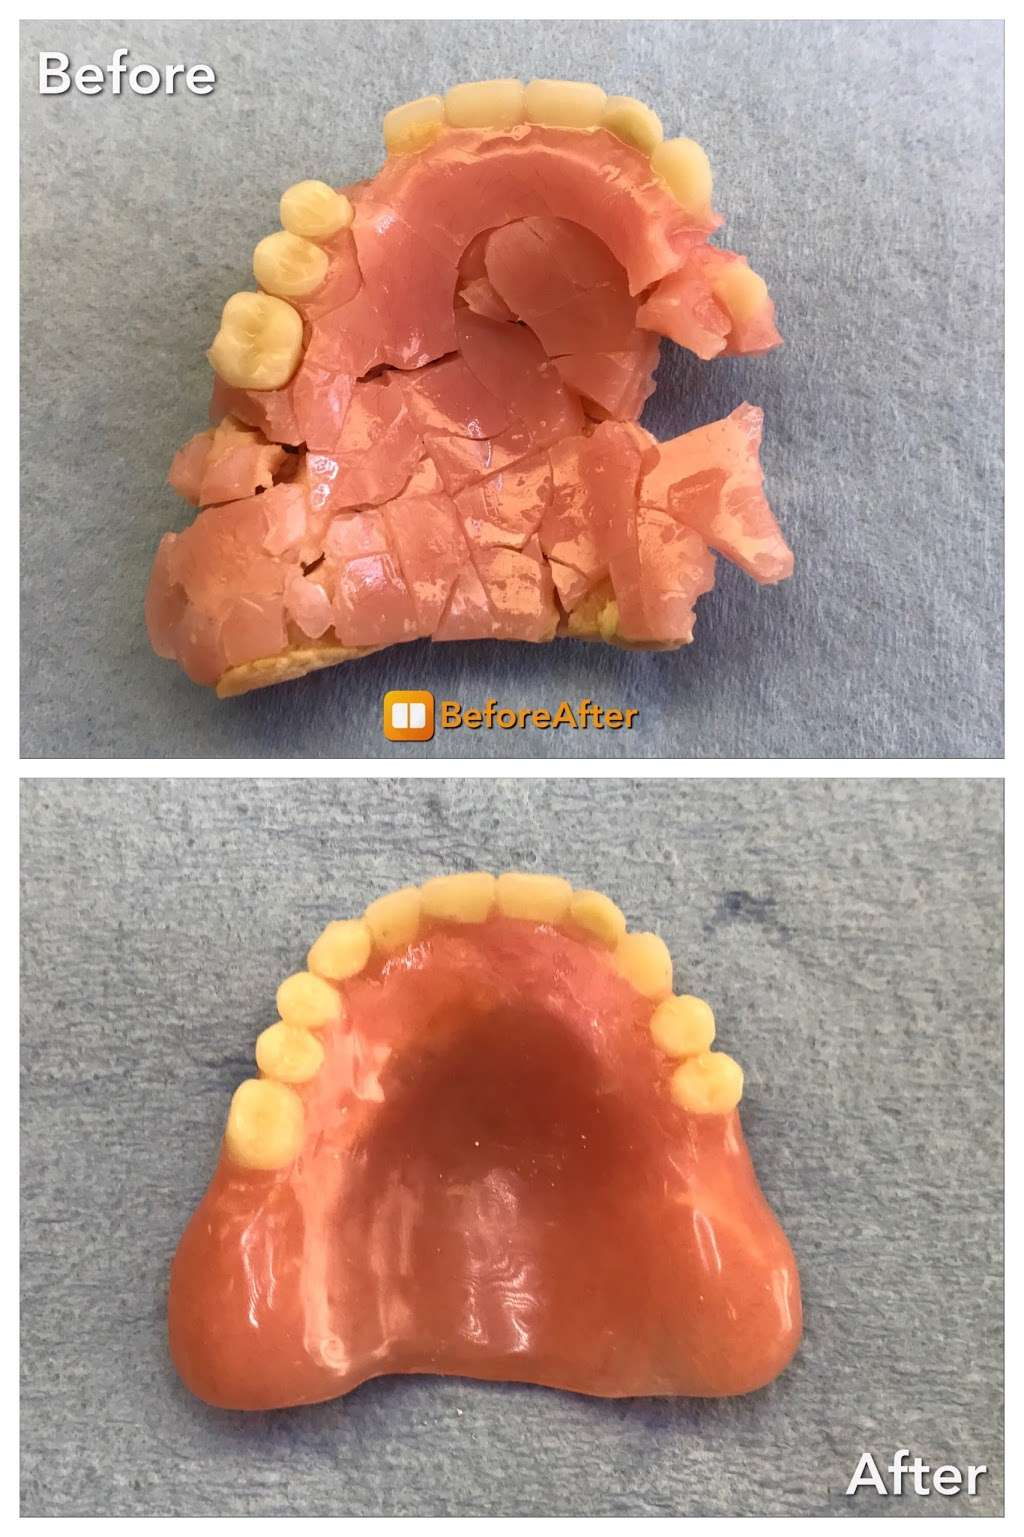 Denture Repairs by Lori - dentist  | Photo 4 of 4 | Address: 3405 Quince St, San Diego, CA 92104, USA | Phone: (619) 851-1169